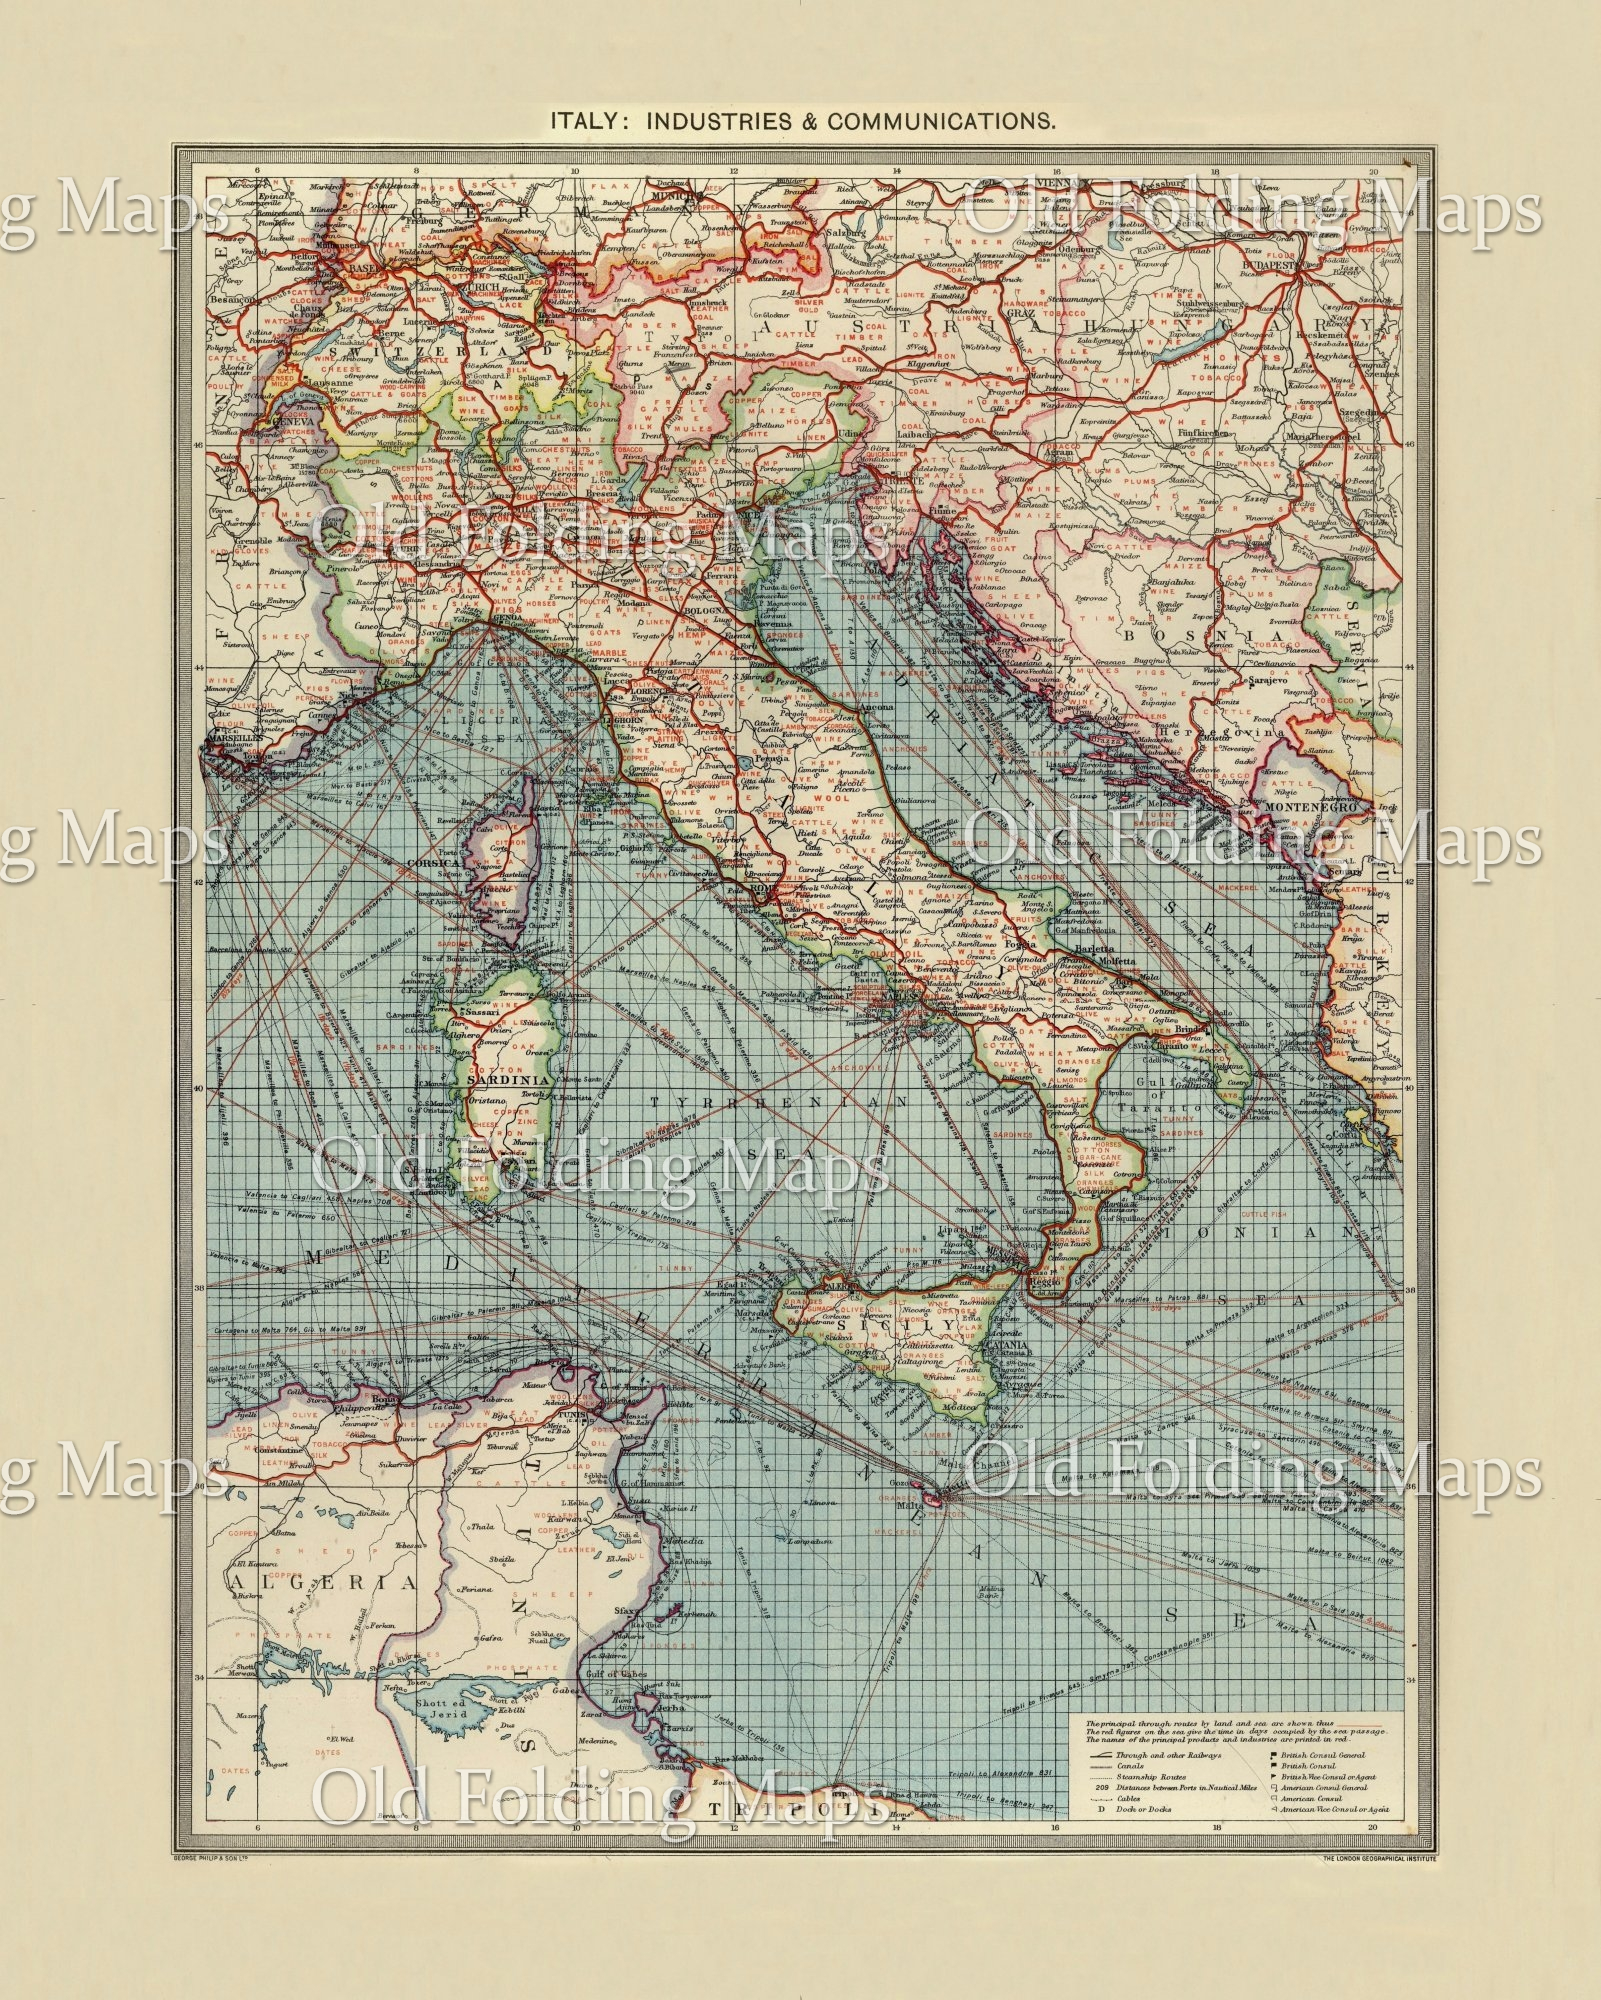 Old Map of Italy Industries and Communications circa 1900